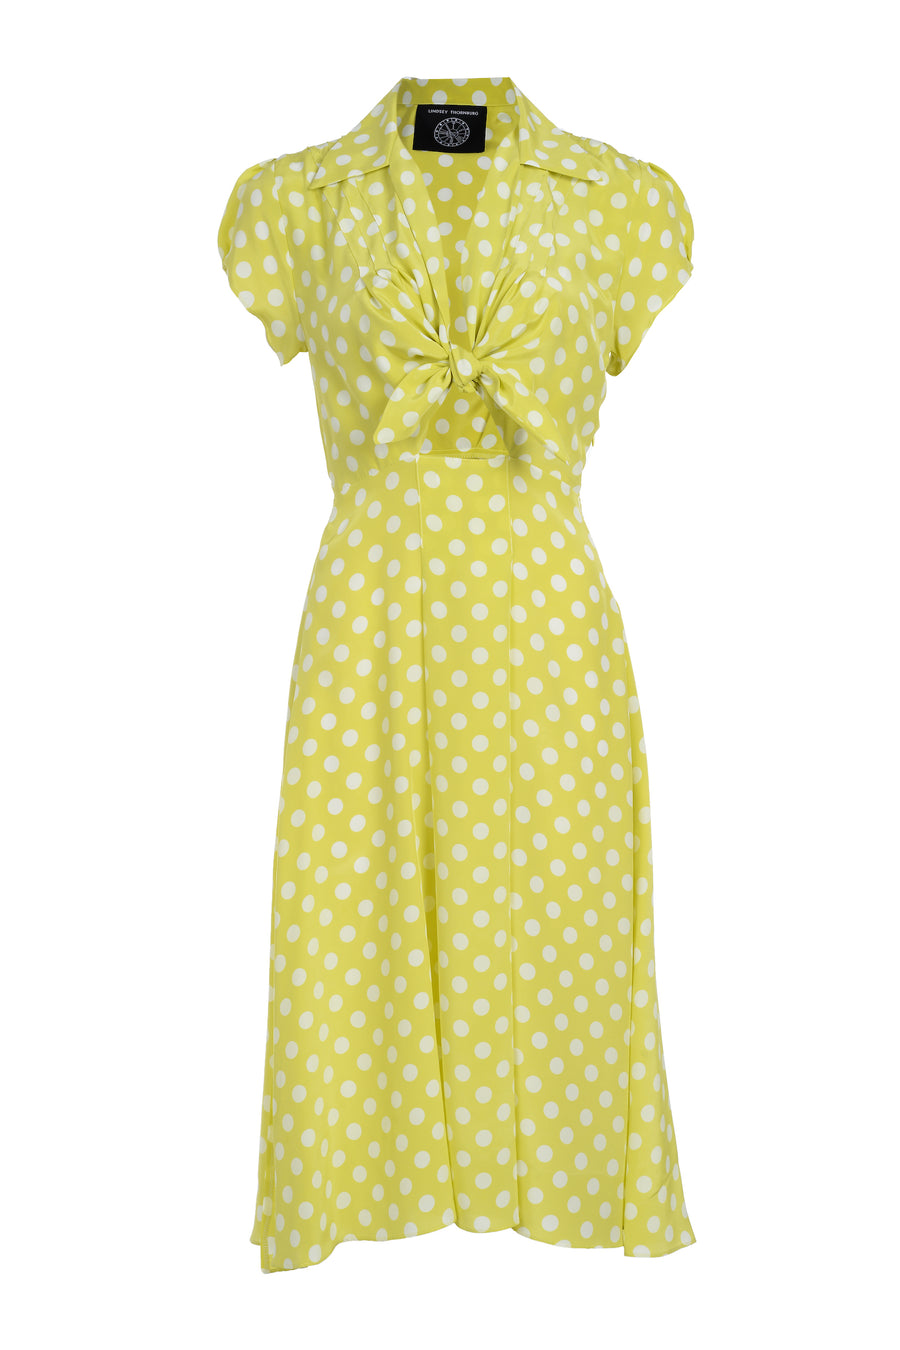 Clark Dress Chartreuse with Spots